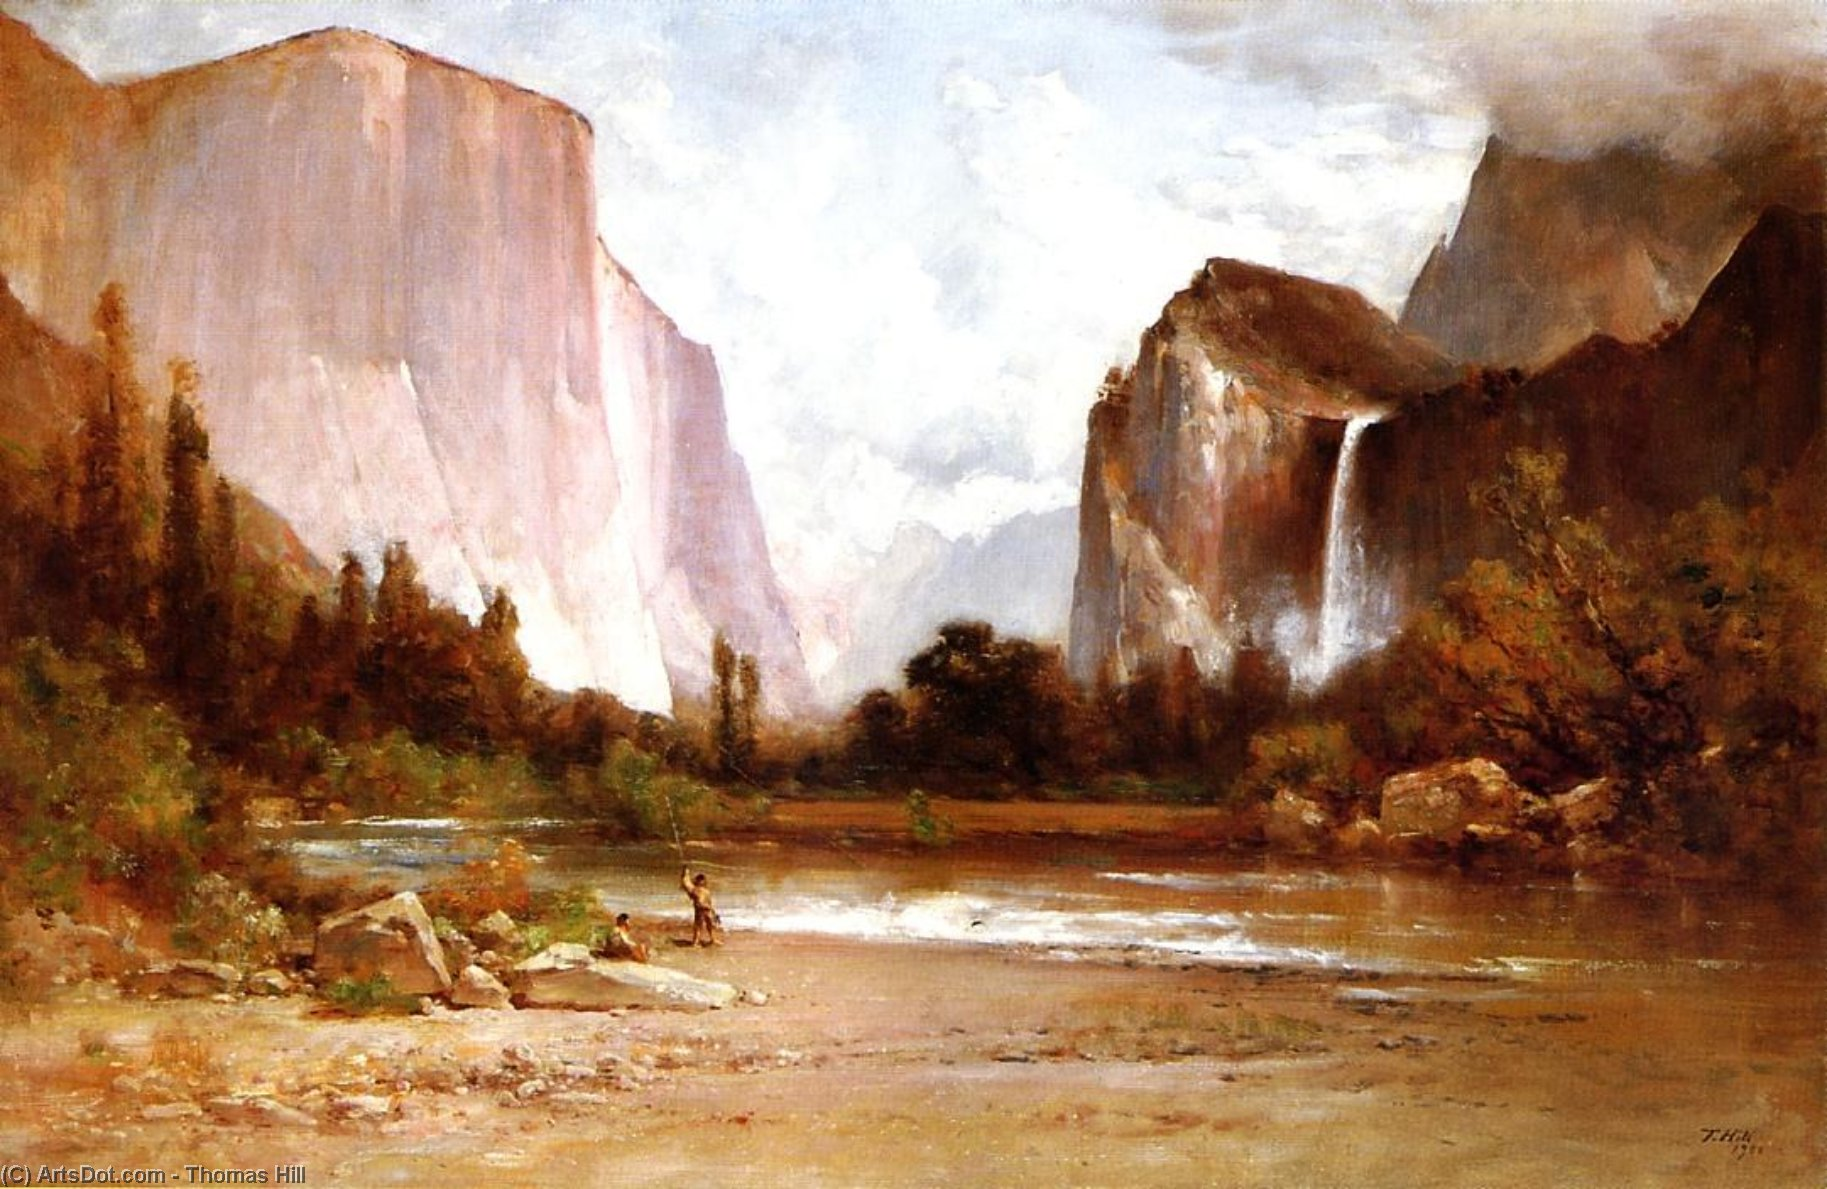 Piute Indiani Pesca in Yosemite, olio su tela di Thomas Hill (1829-1908, United Kingdom)